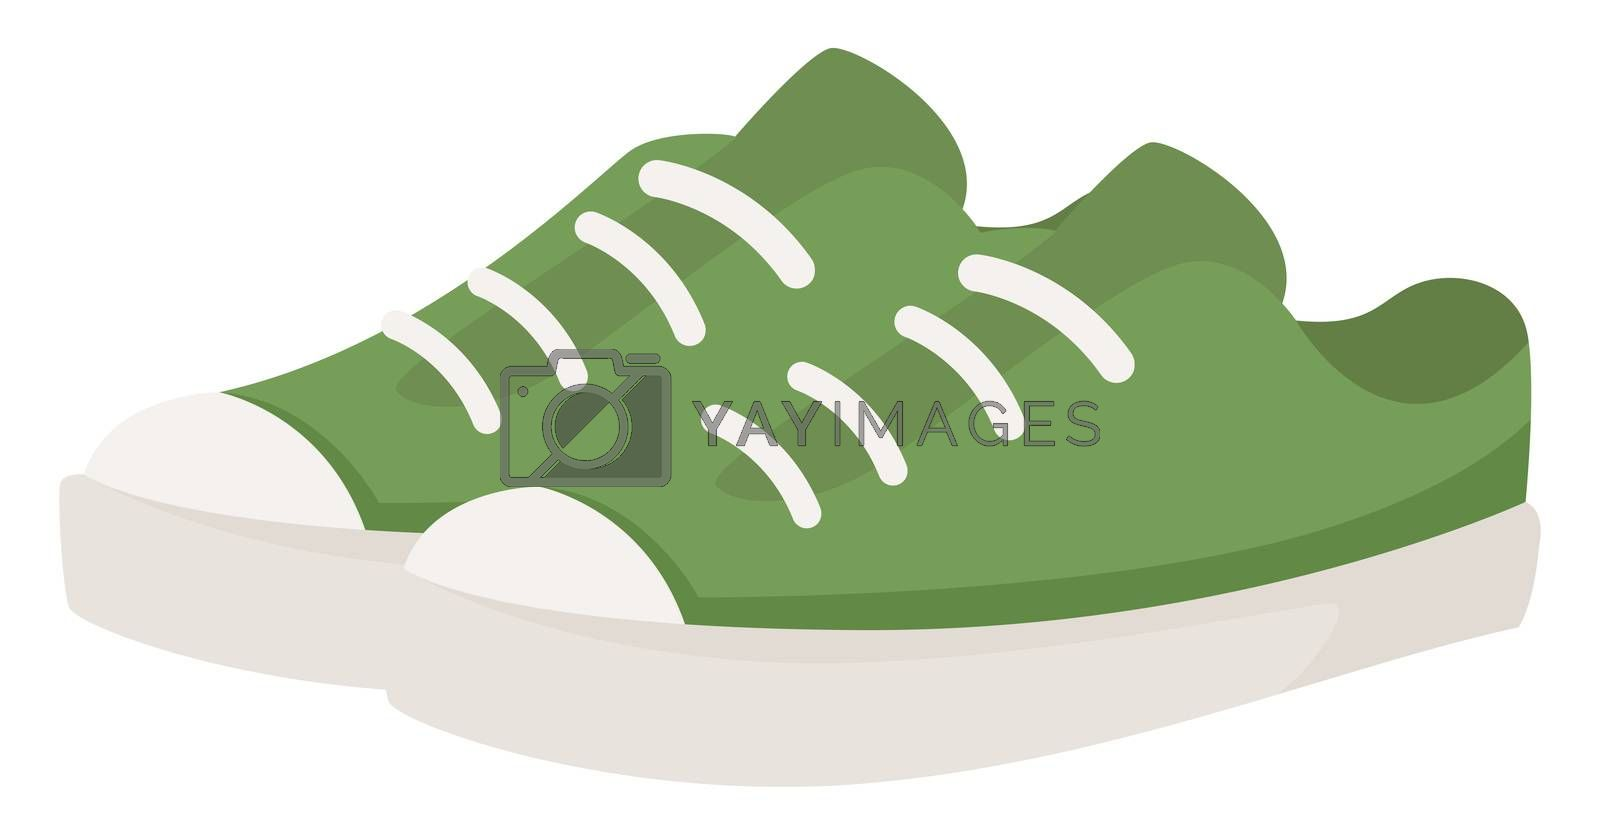 Green summer sneakers, illustration, vector on white background